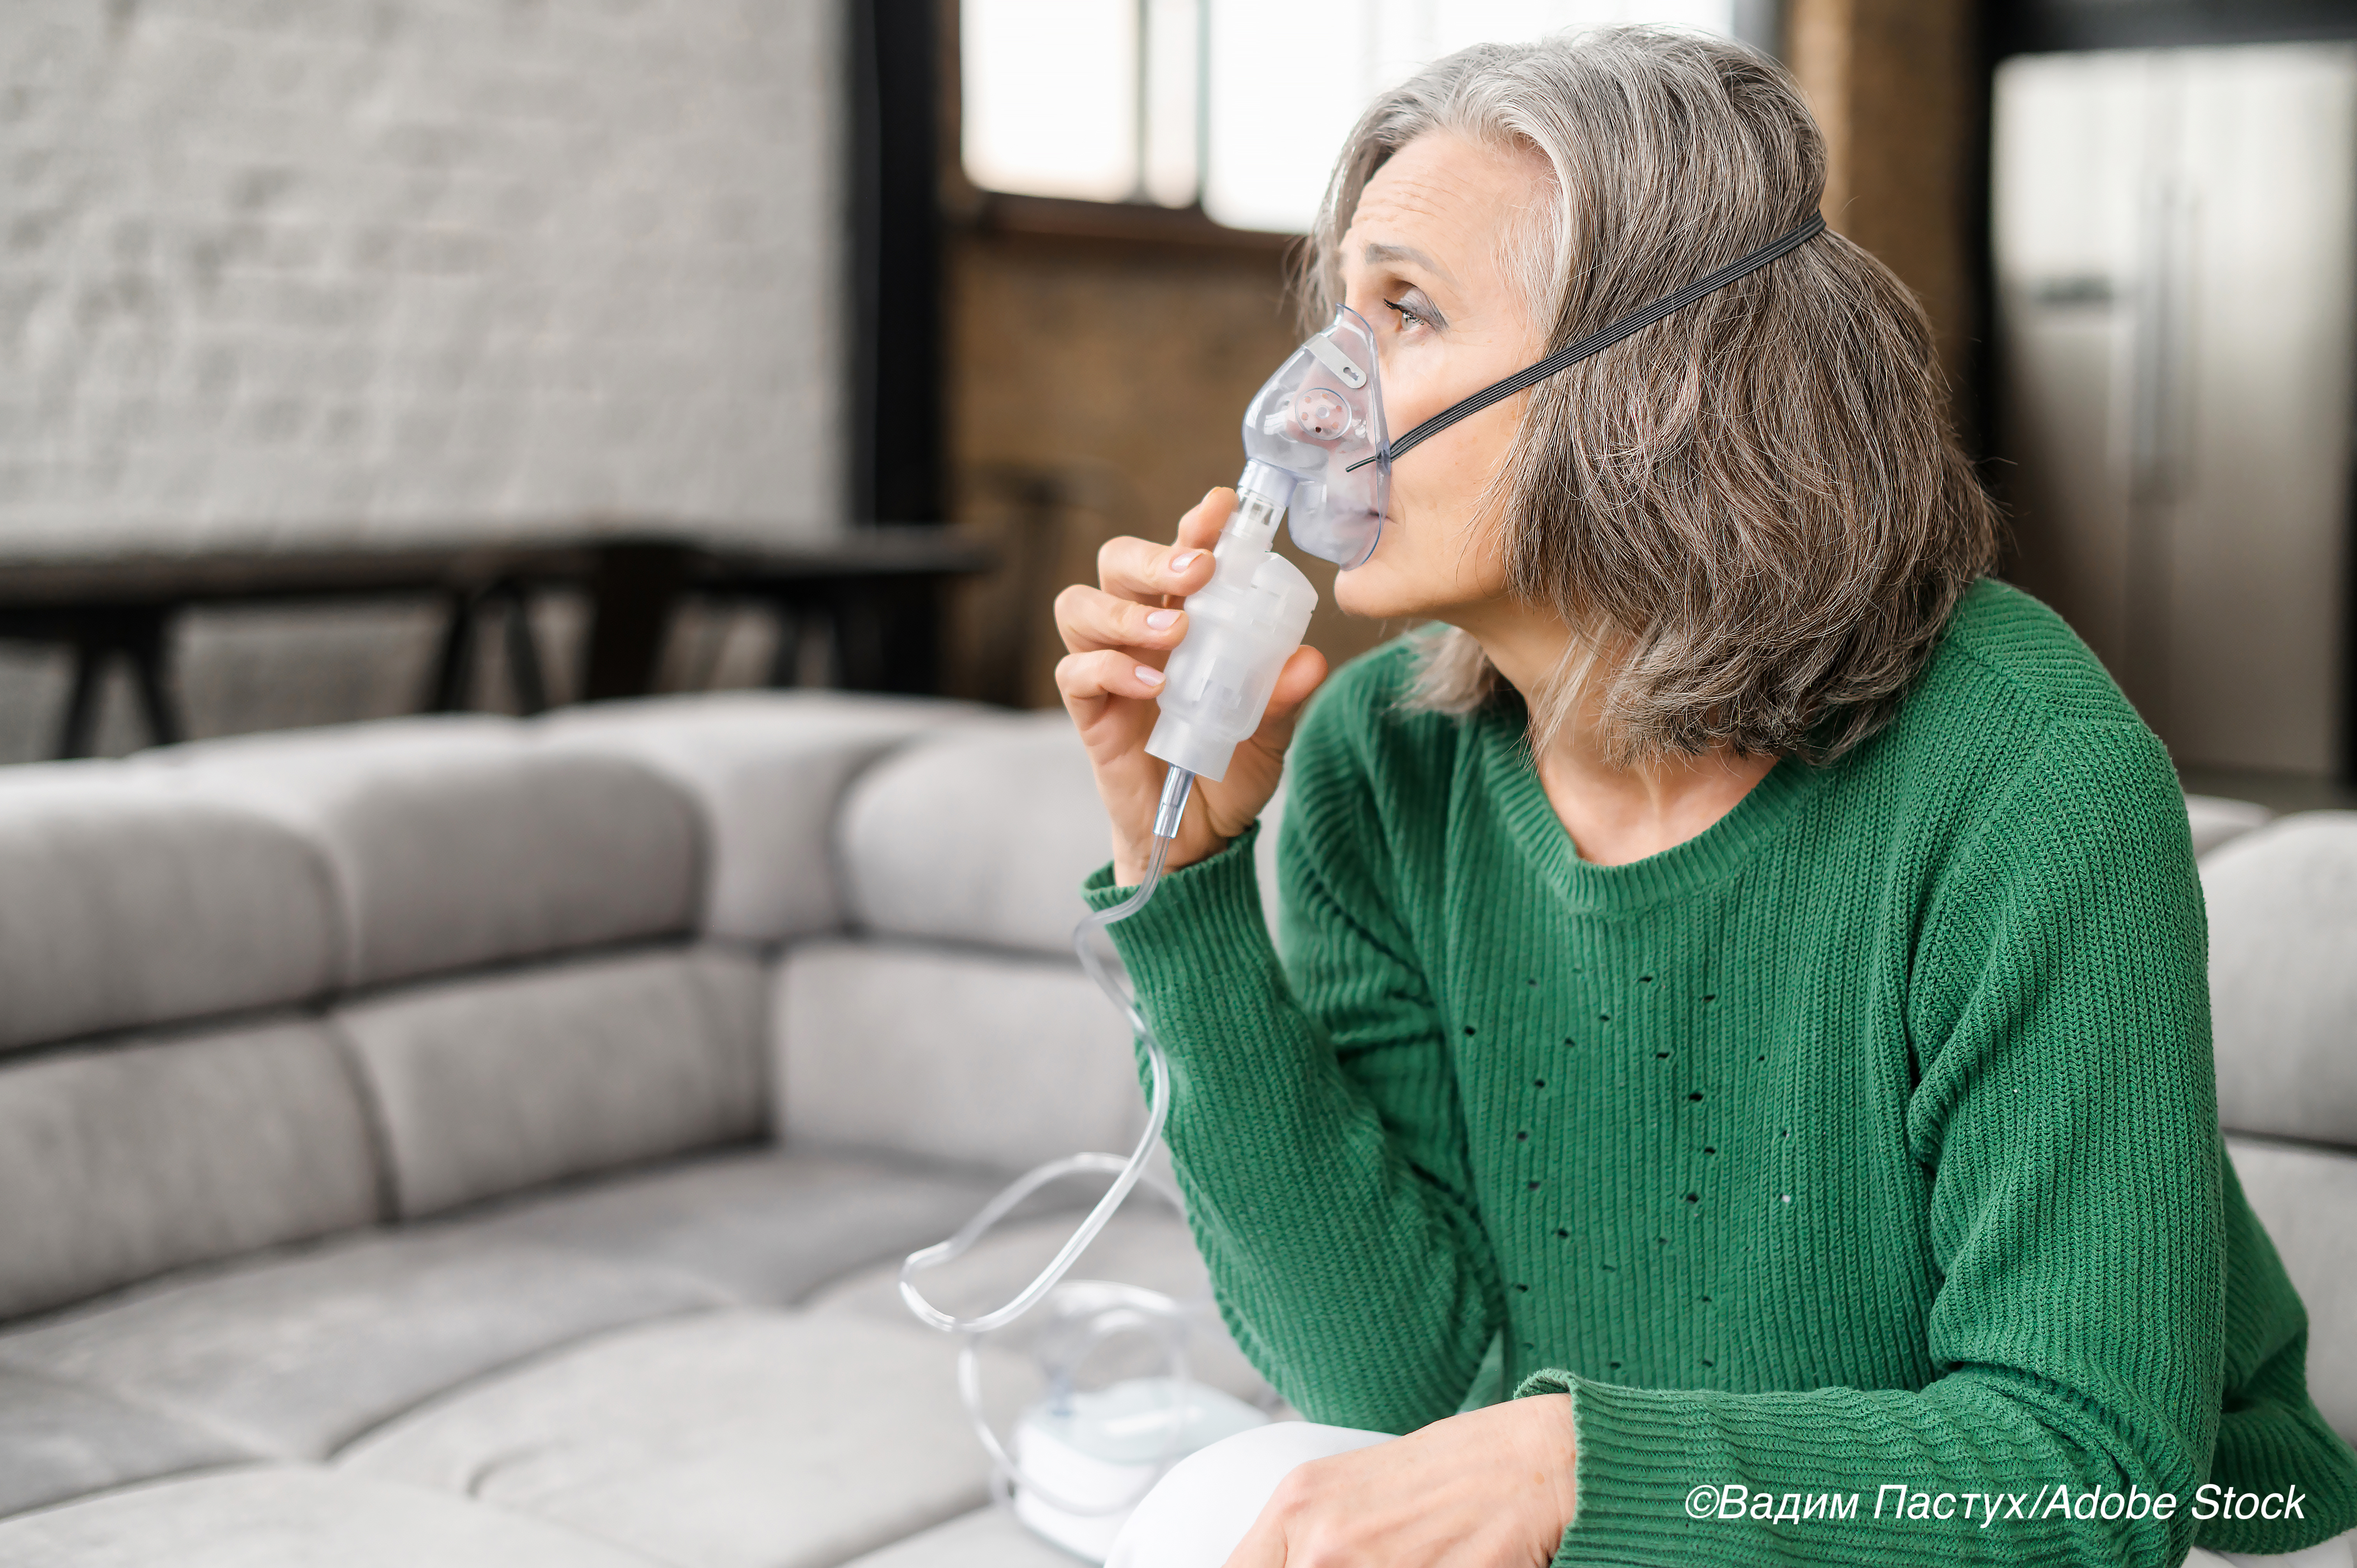 Nebulized Heparin For ARDS: Exploratory CHARLI Outcomes Point to Less Lung Injury, Earlier Return Home